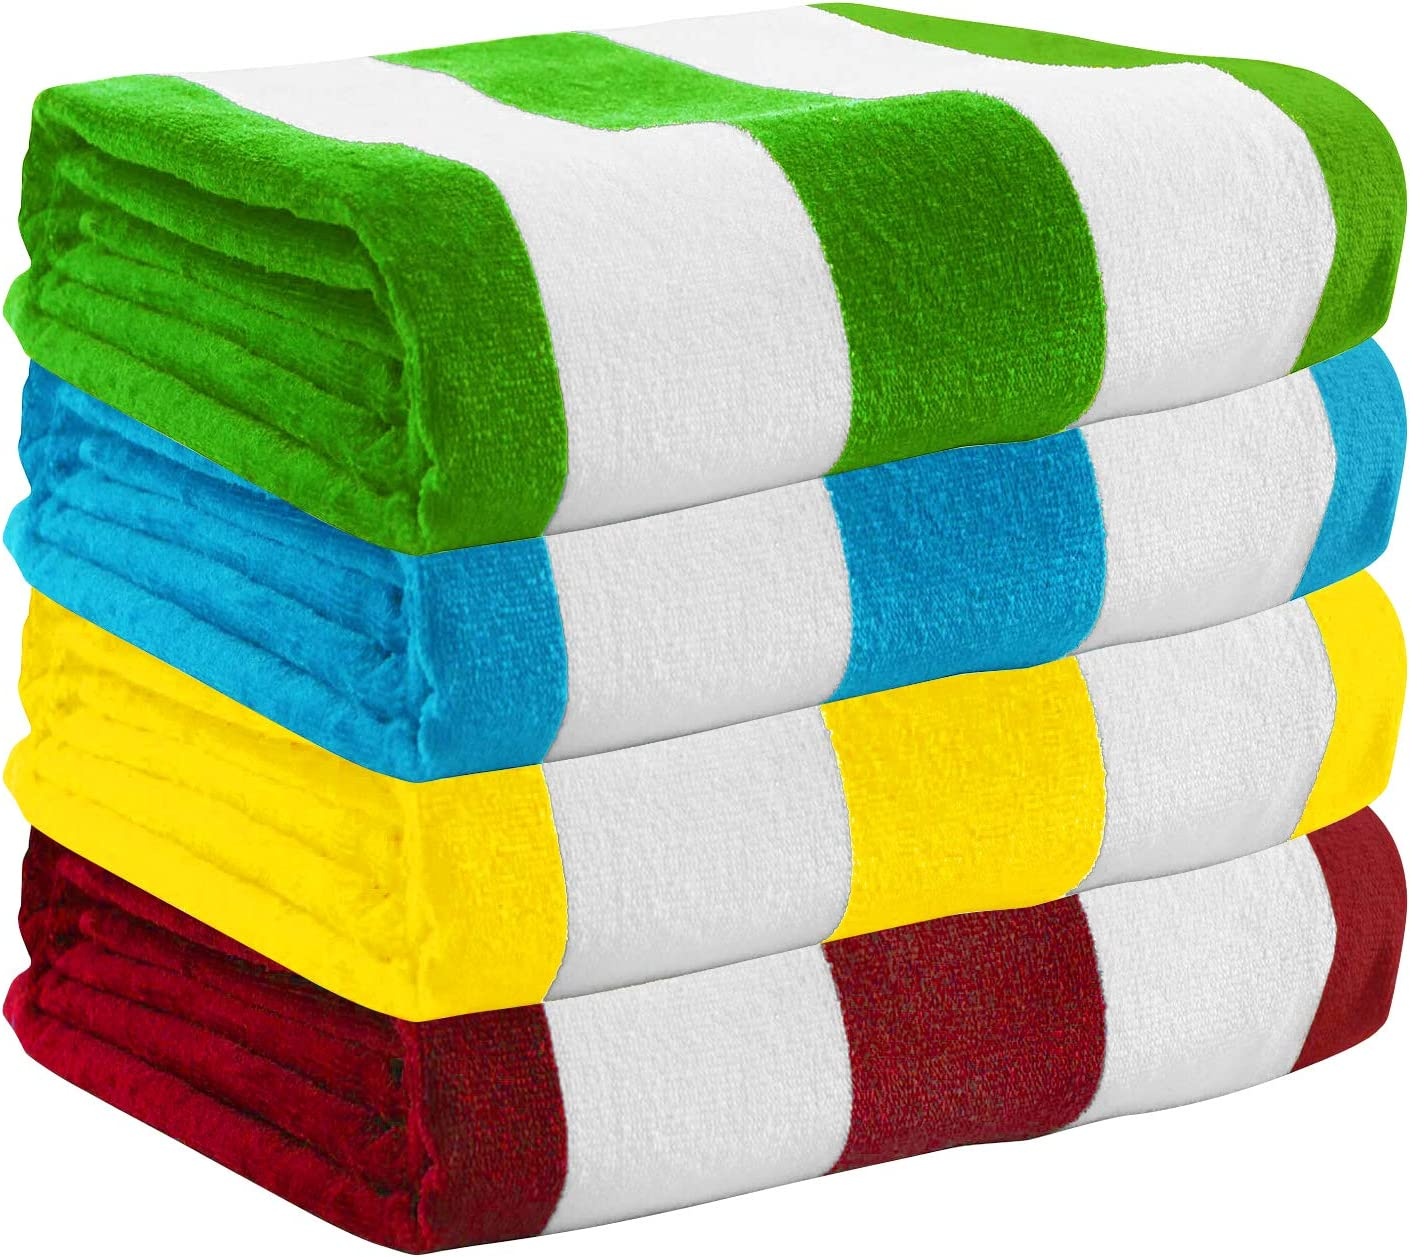 Exclusivo Mezcla 100% Cotton Oversized Large Beach Towel Sets, Pool Towel